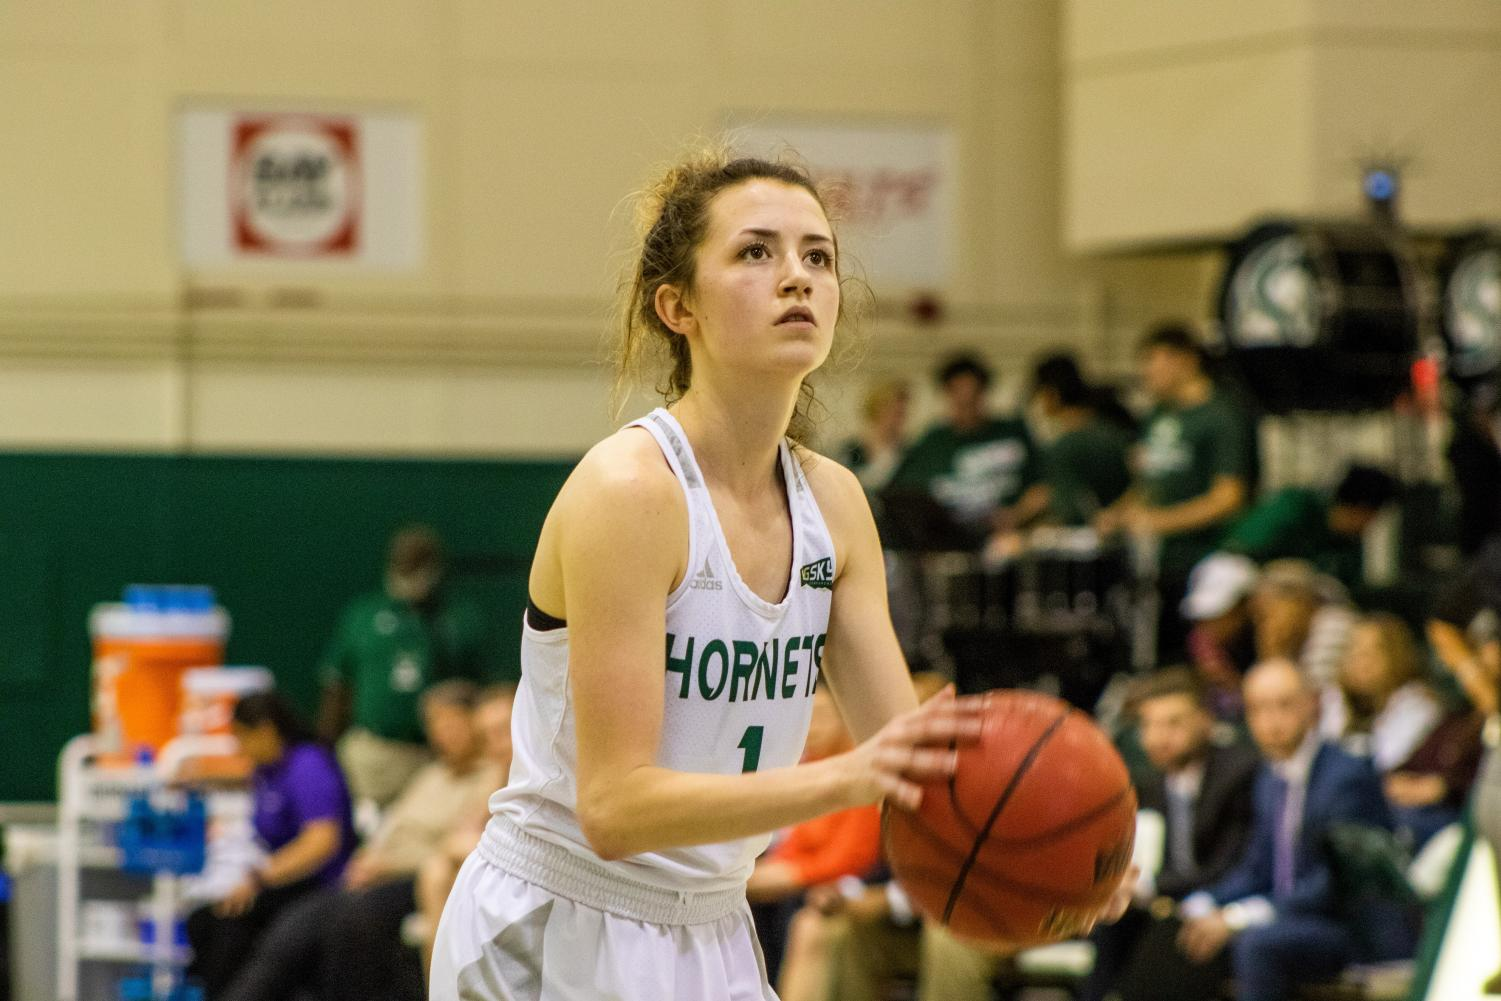 Sac State sophomore point guard Milee Enger prepares to shoot a free throw against Weber State on Thursday, Feb. 6 at the Nest. The Hornets defeated the Wildcats 58-52.